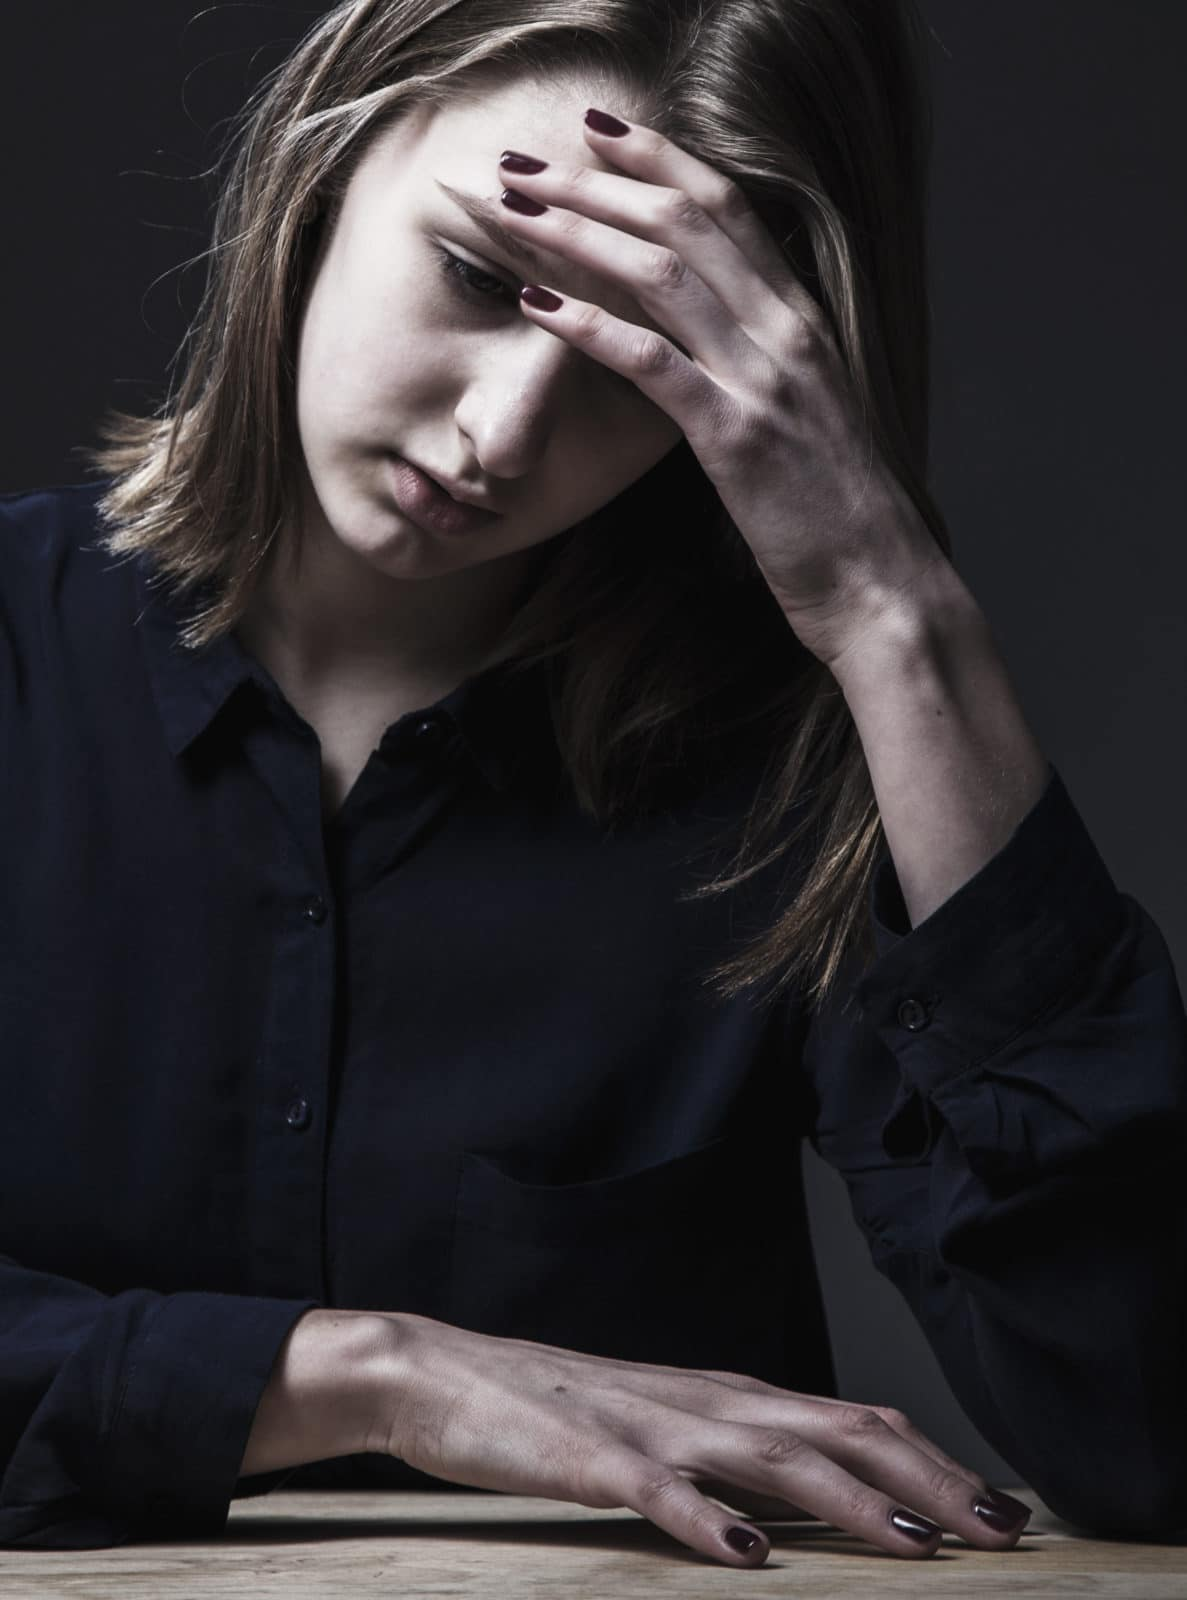 Woman in depression alone with problems (difficulties ...